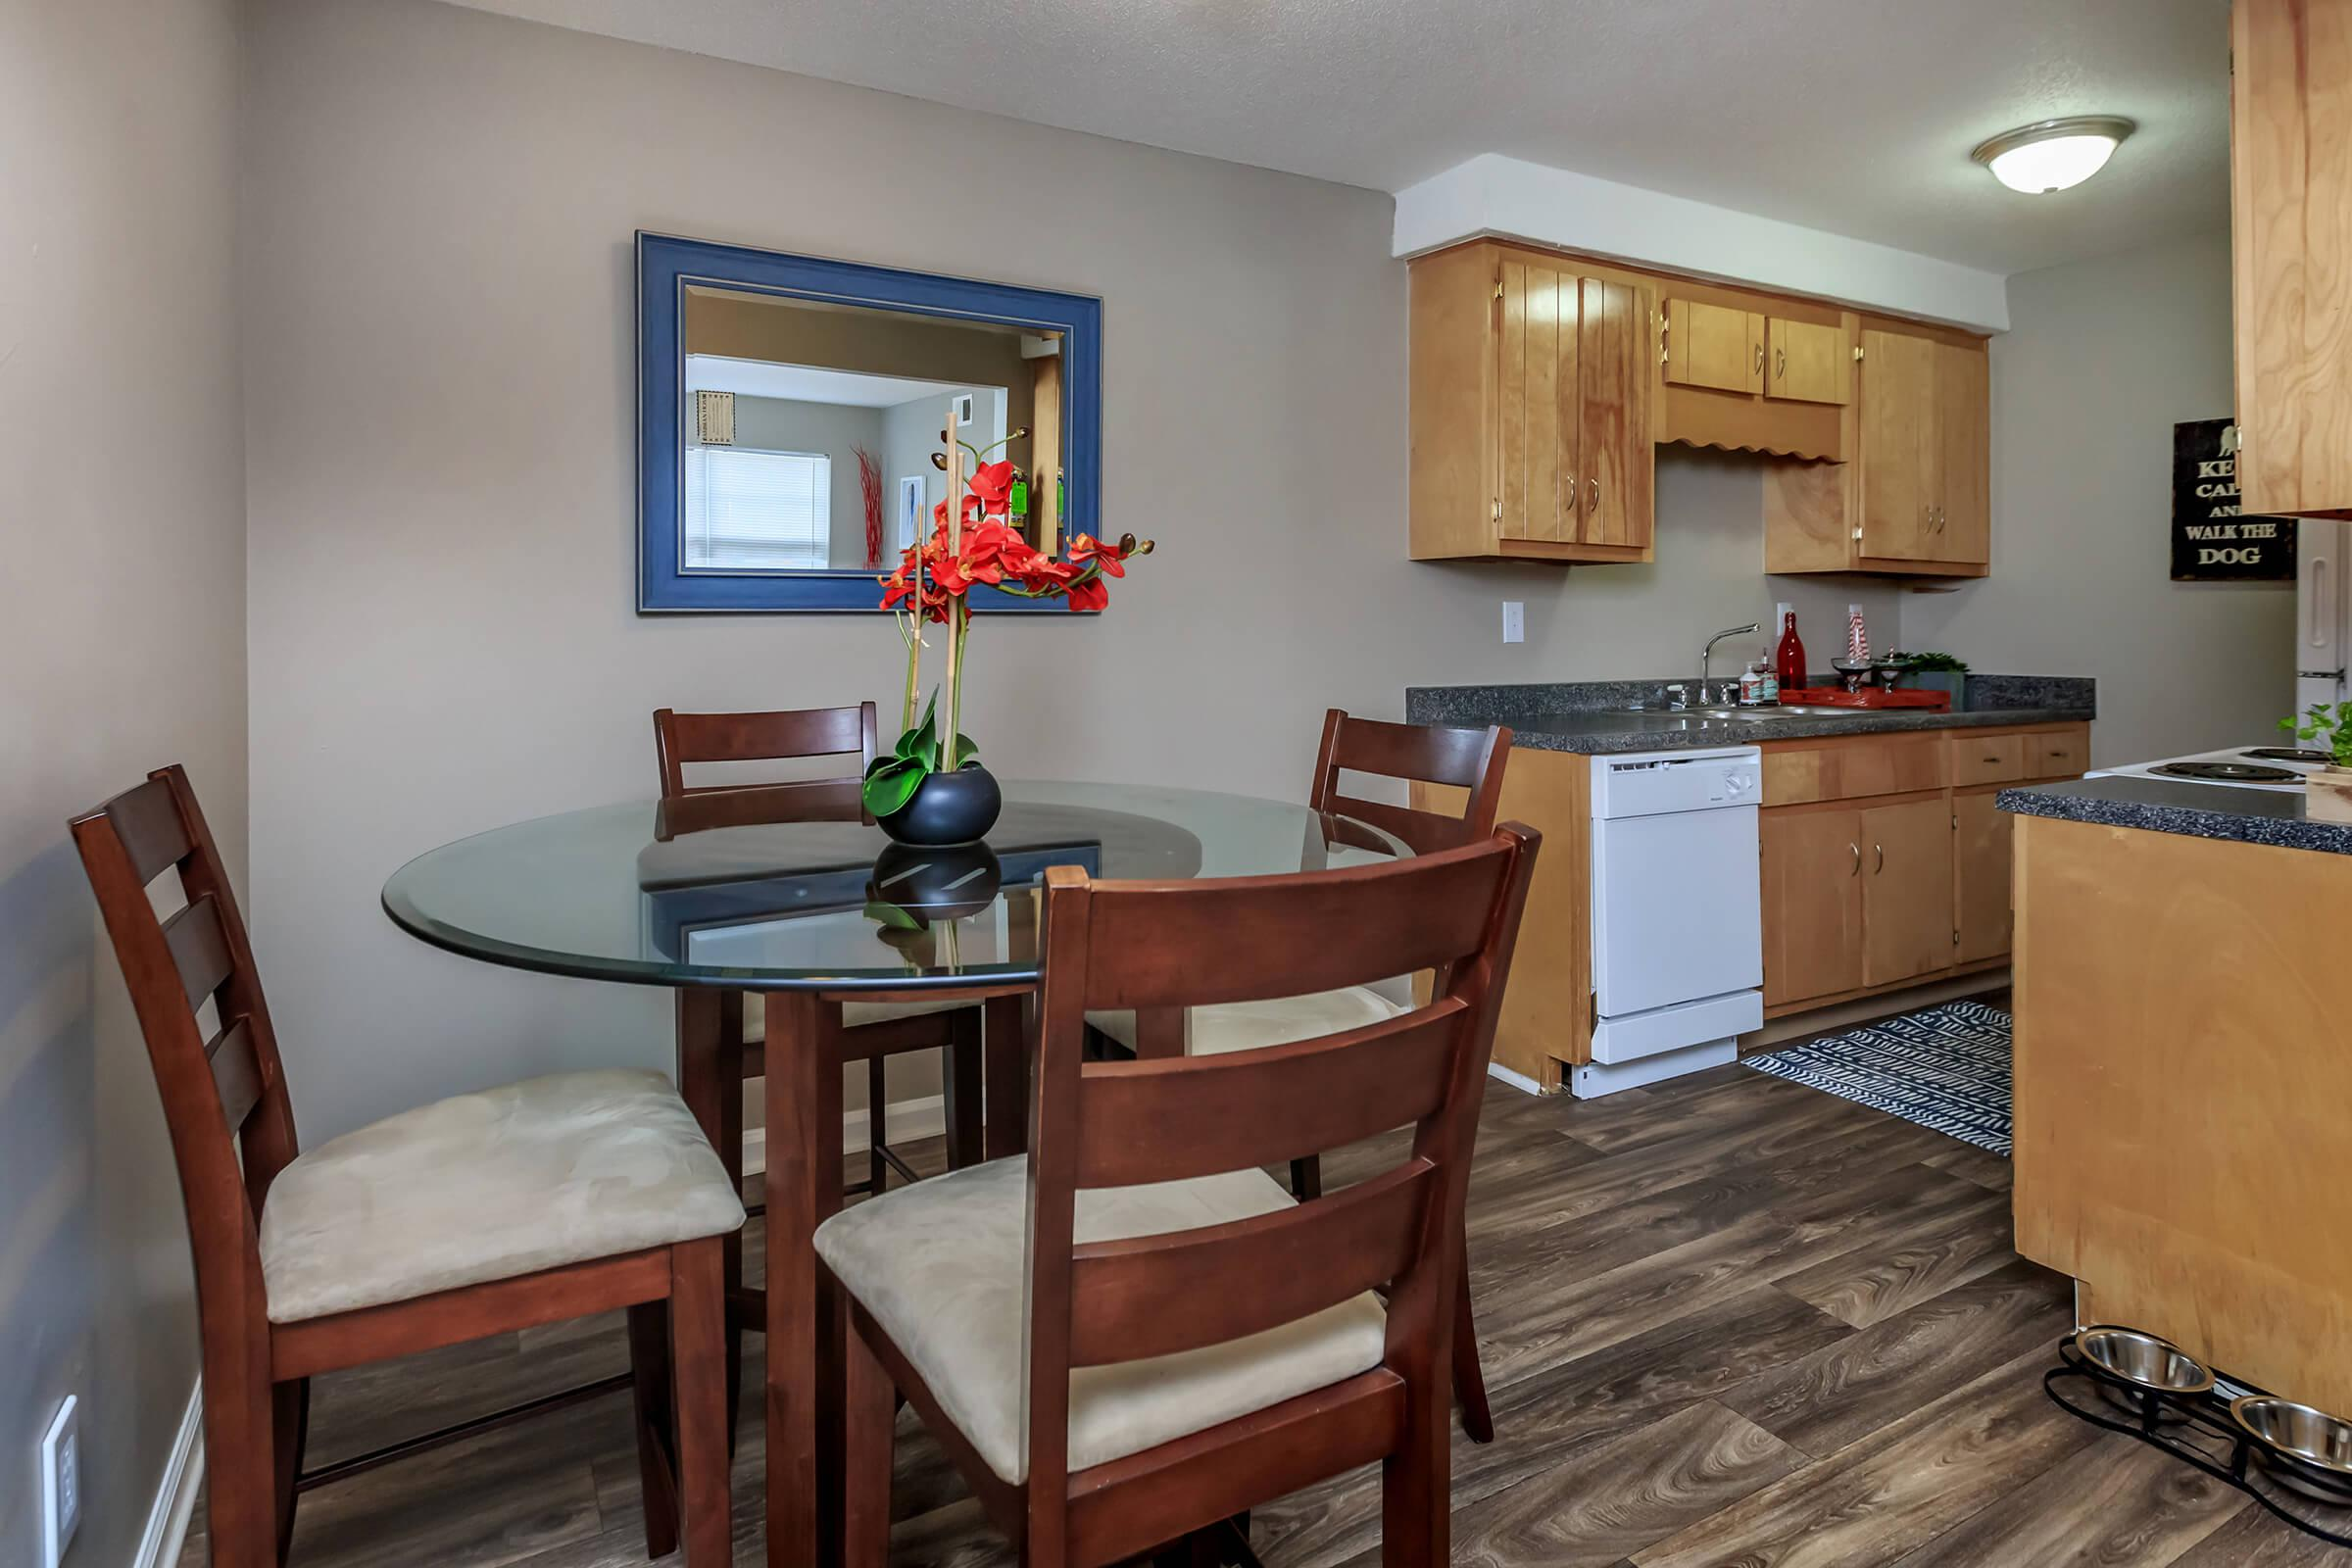 Eagles Crest at Durrett has Kitchens Equipped with Stove